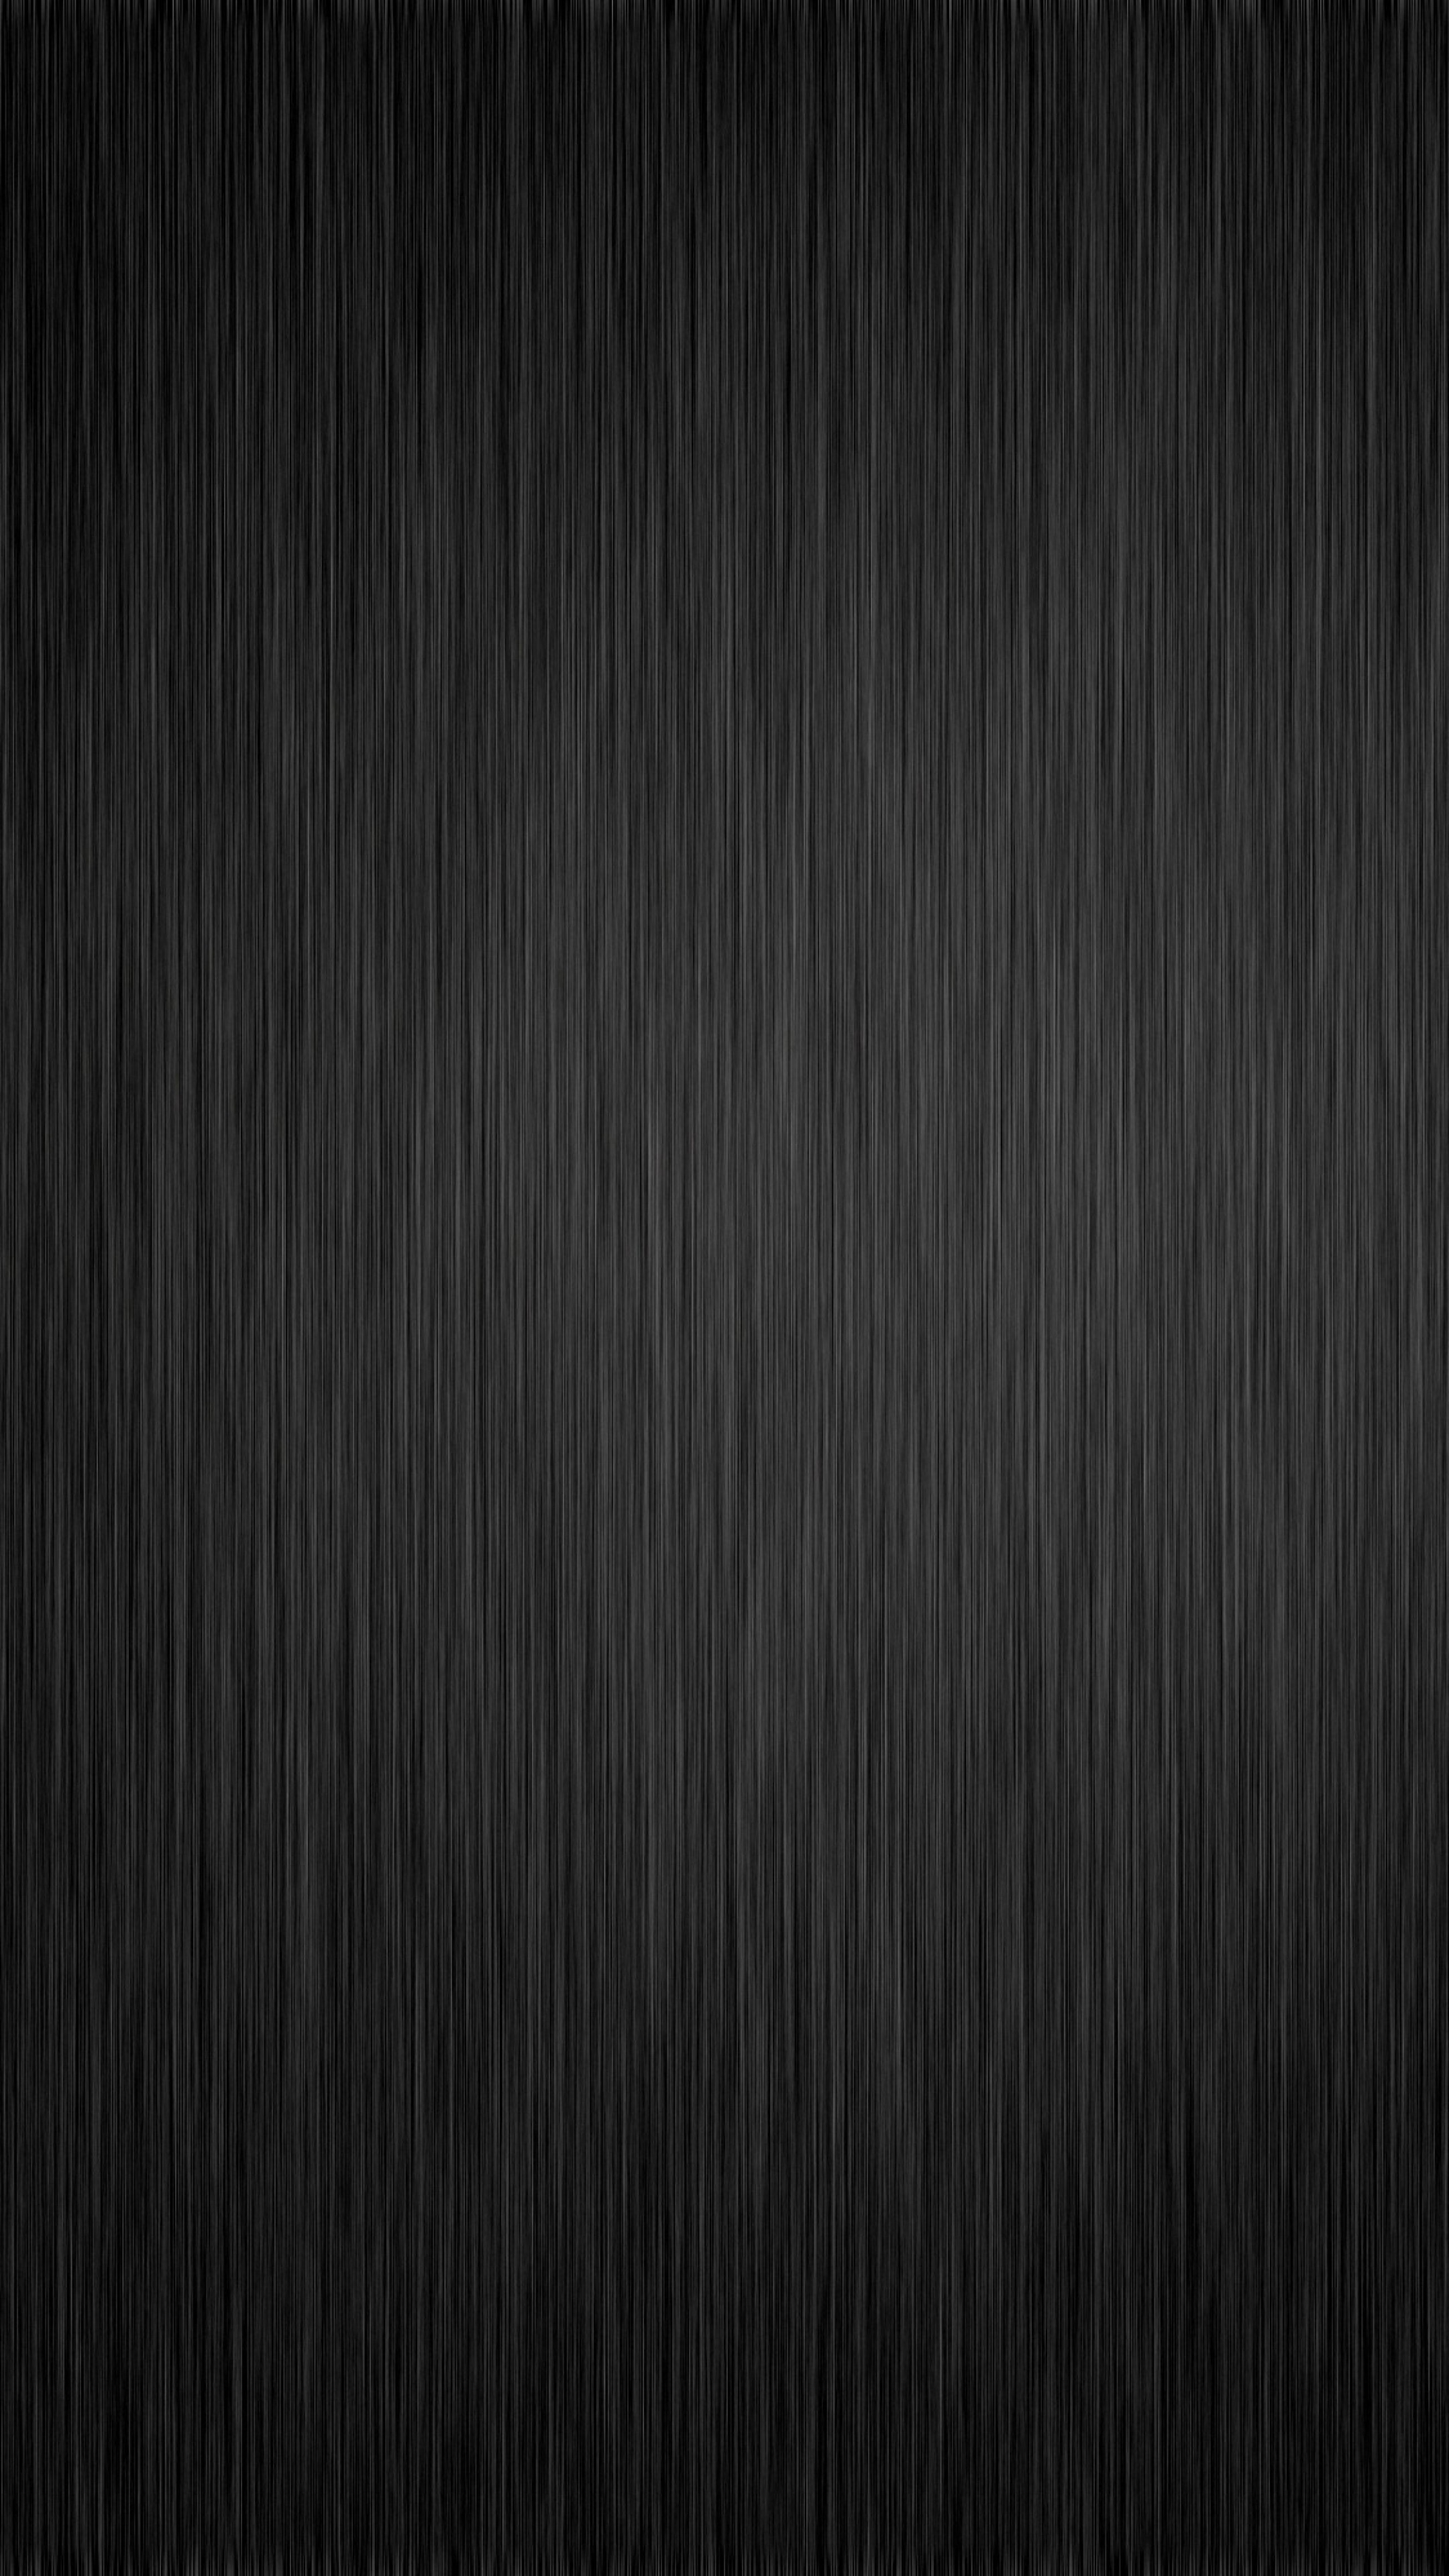 2160x3840  Wallpaper black, background, lines, scratches